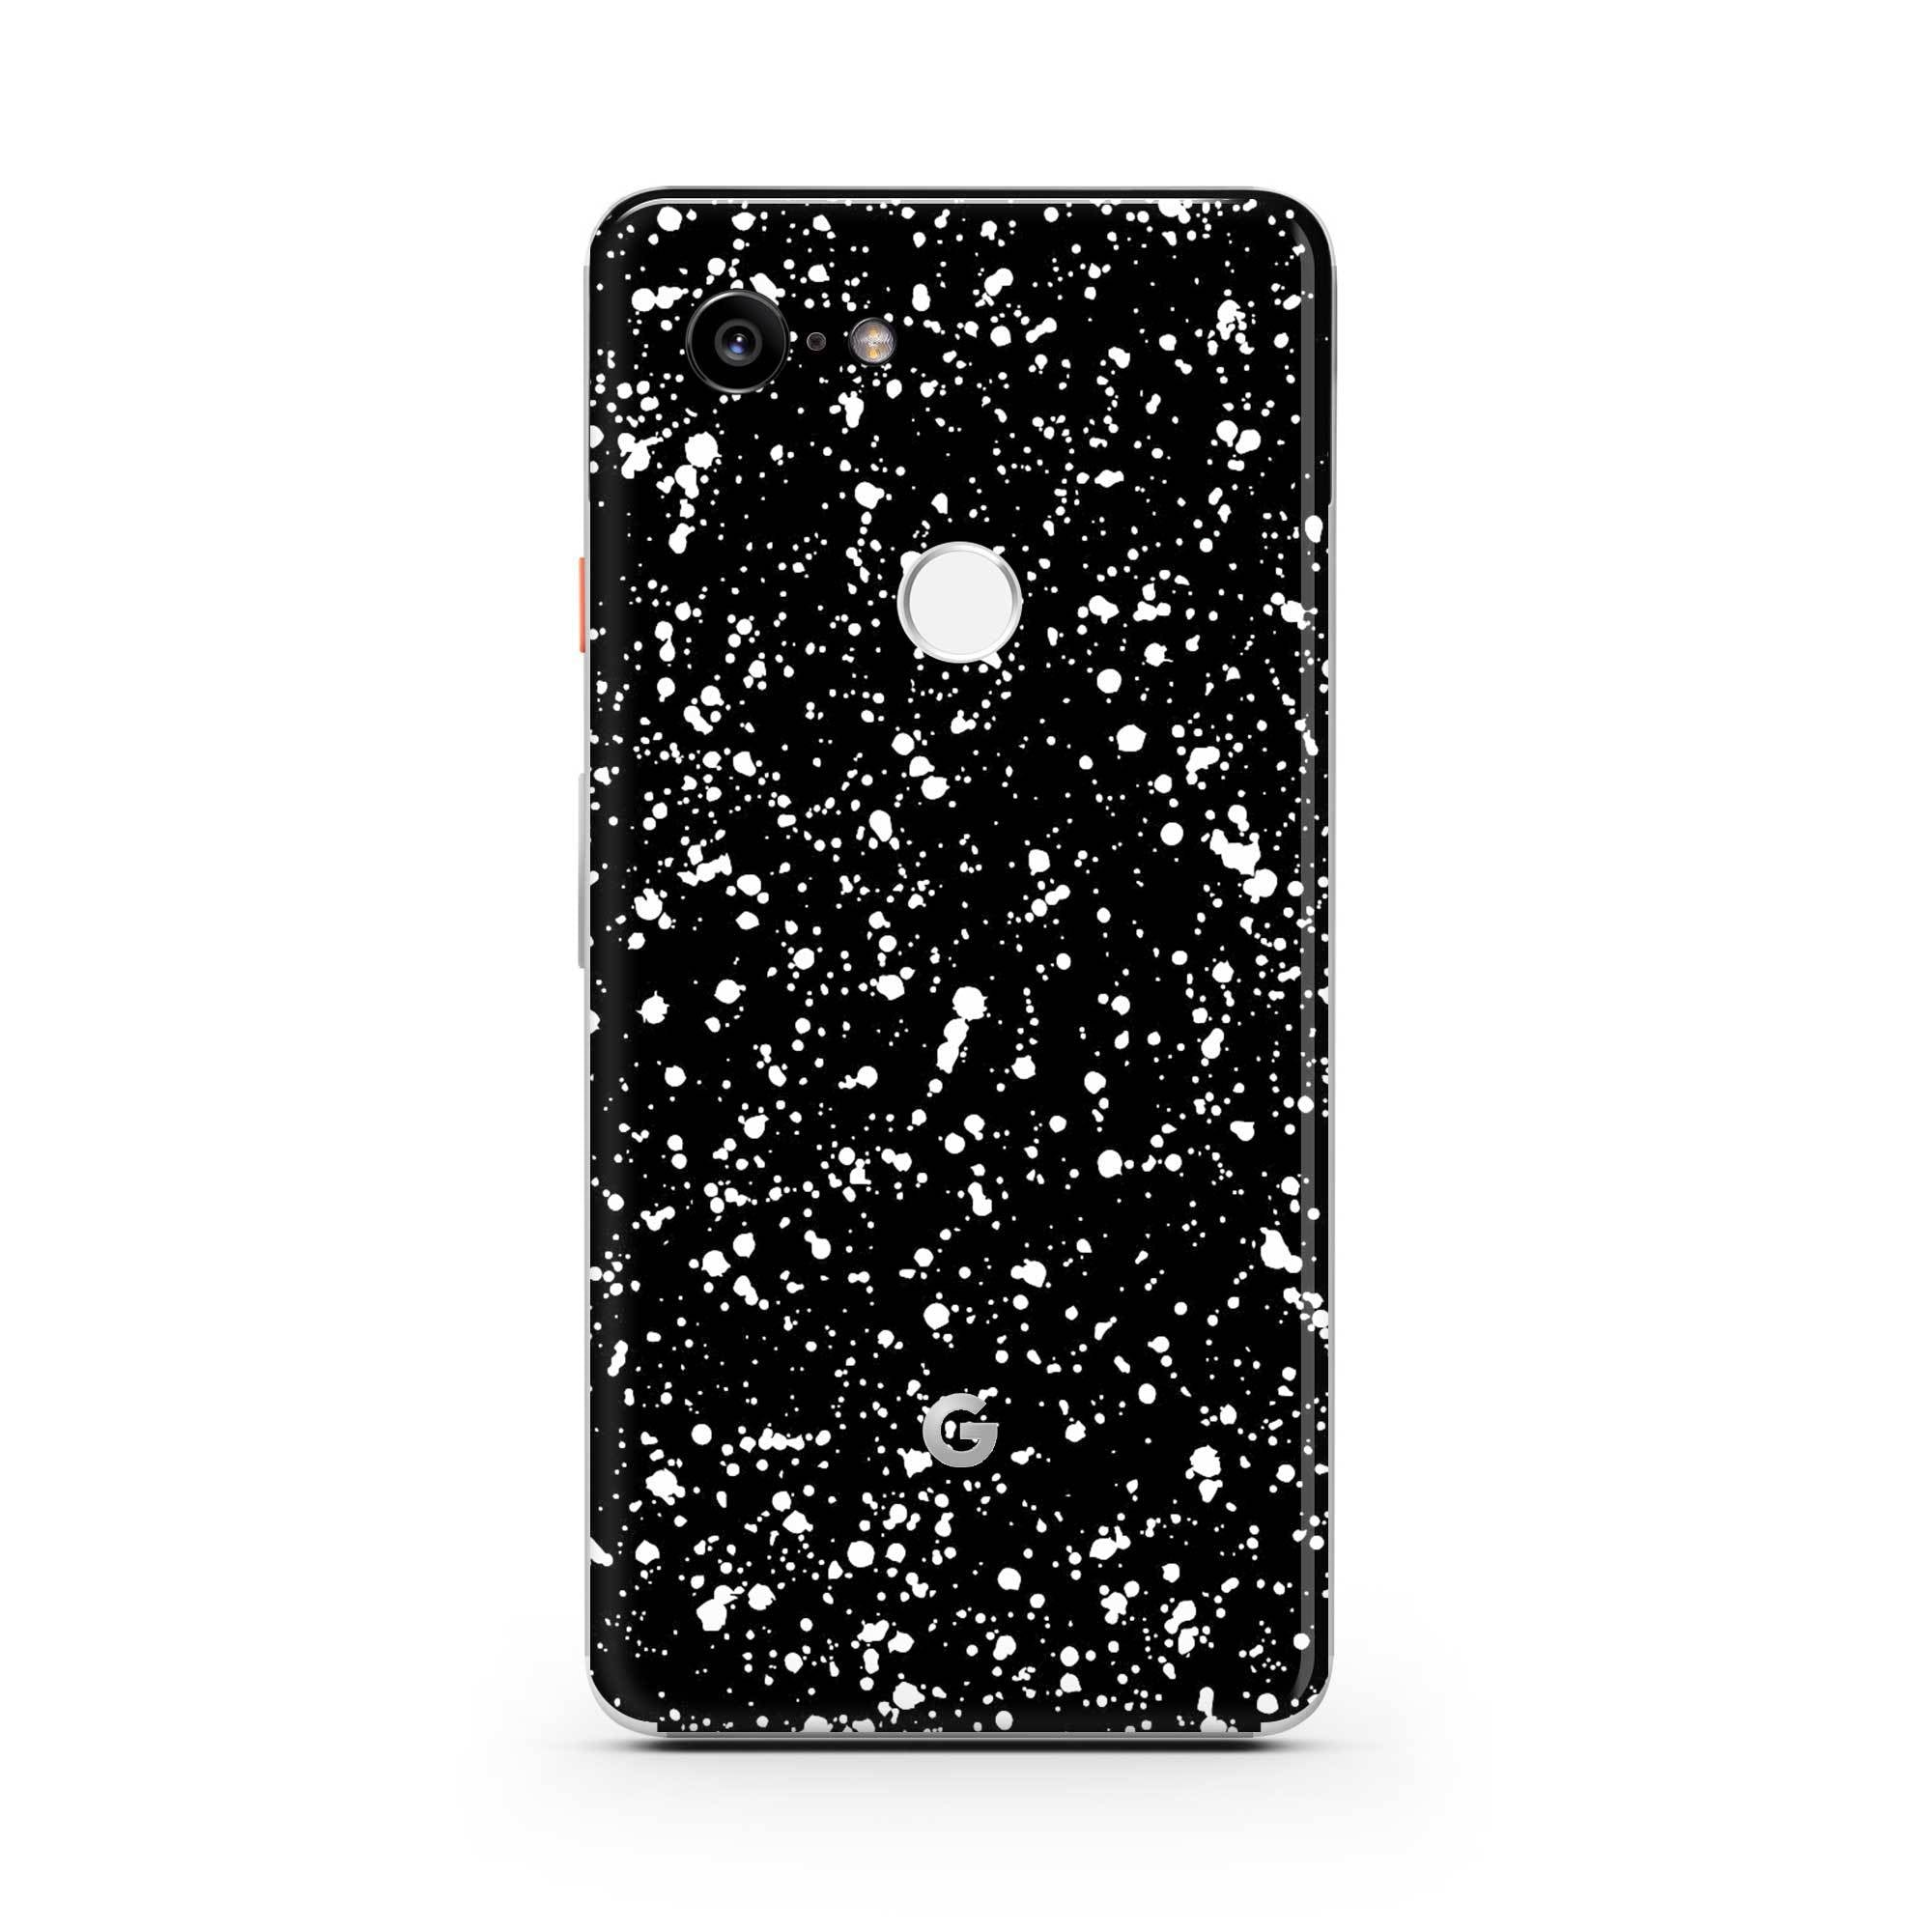 Black Speckle Pixel 3a XL Skin + Case